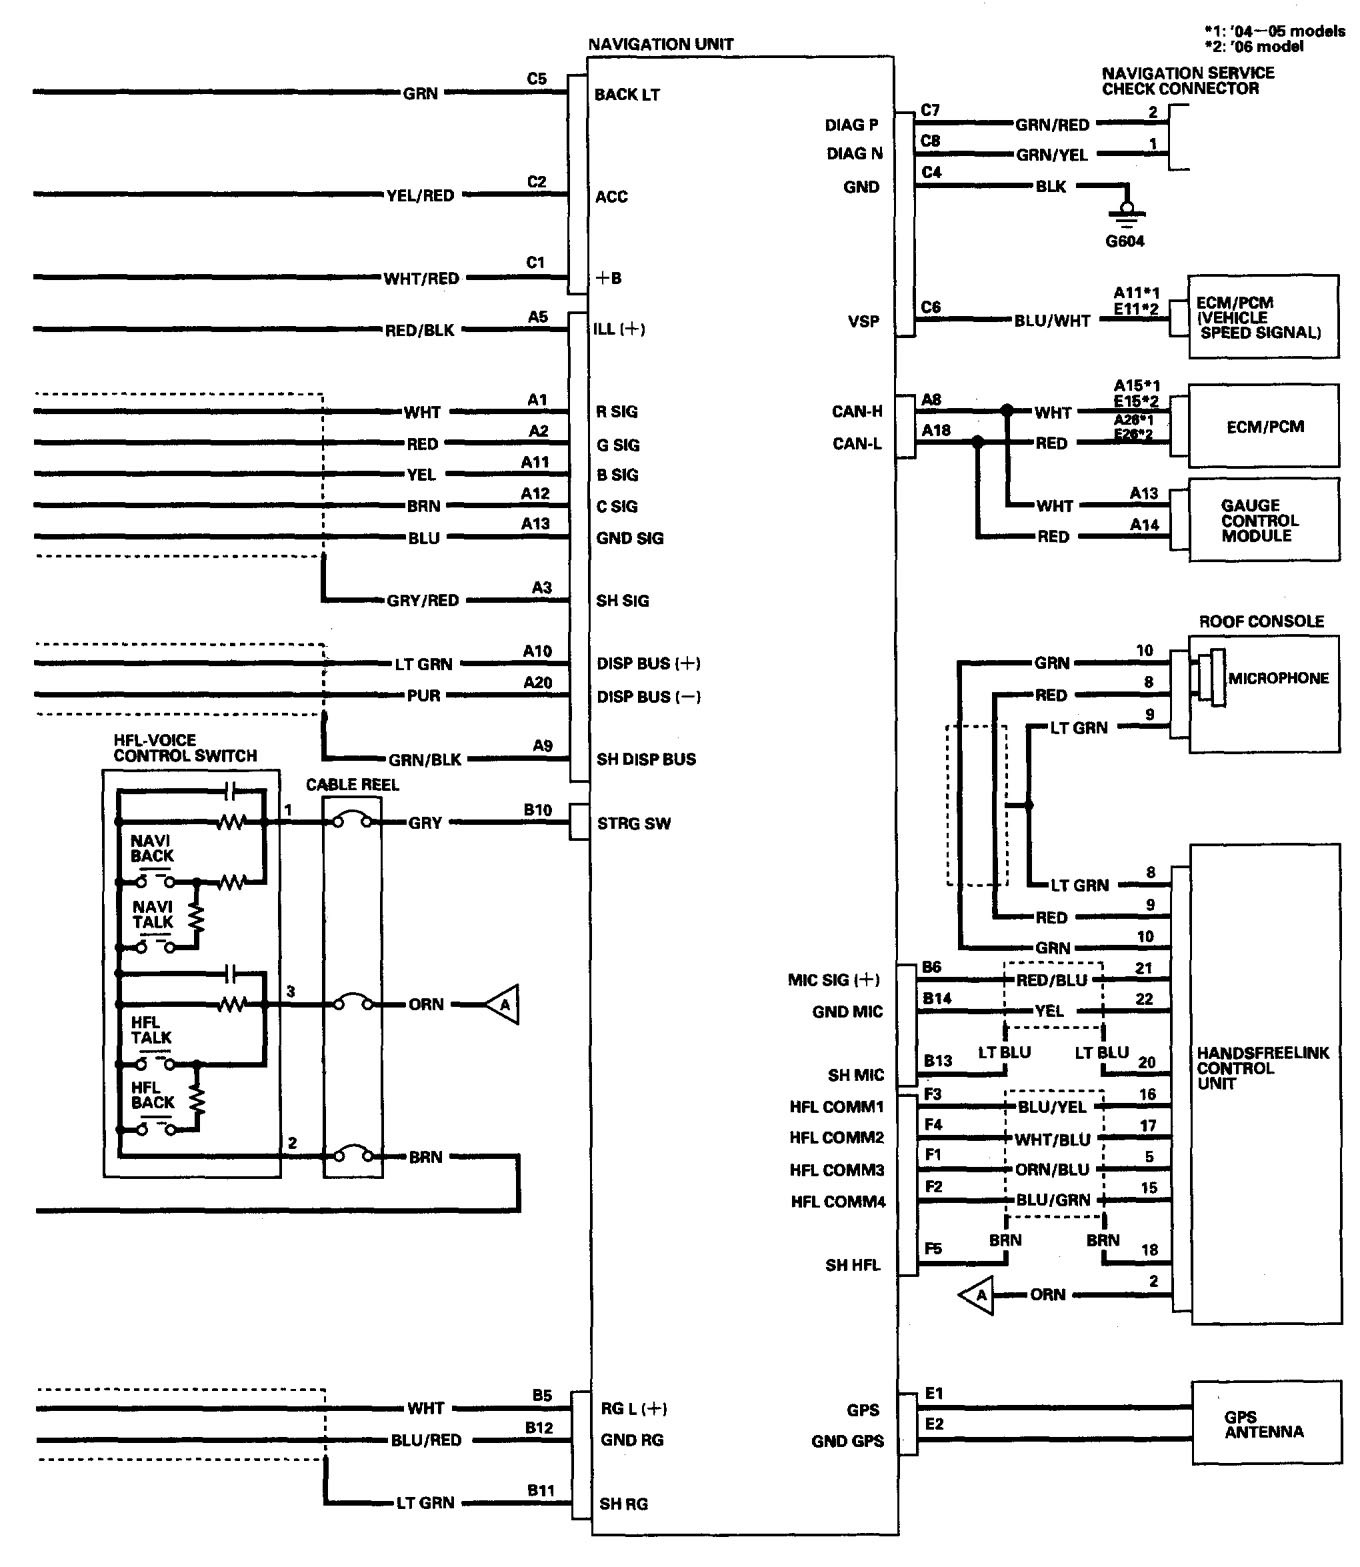 Acura Tl Wiring Diagram Navigation System on 2002 Acura Rsx Parts Diagrams